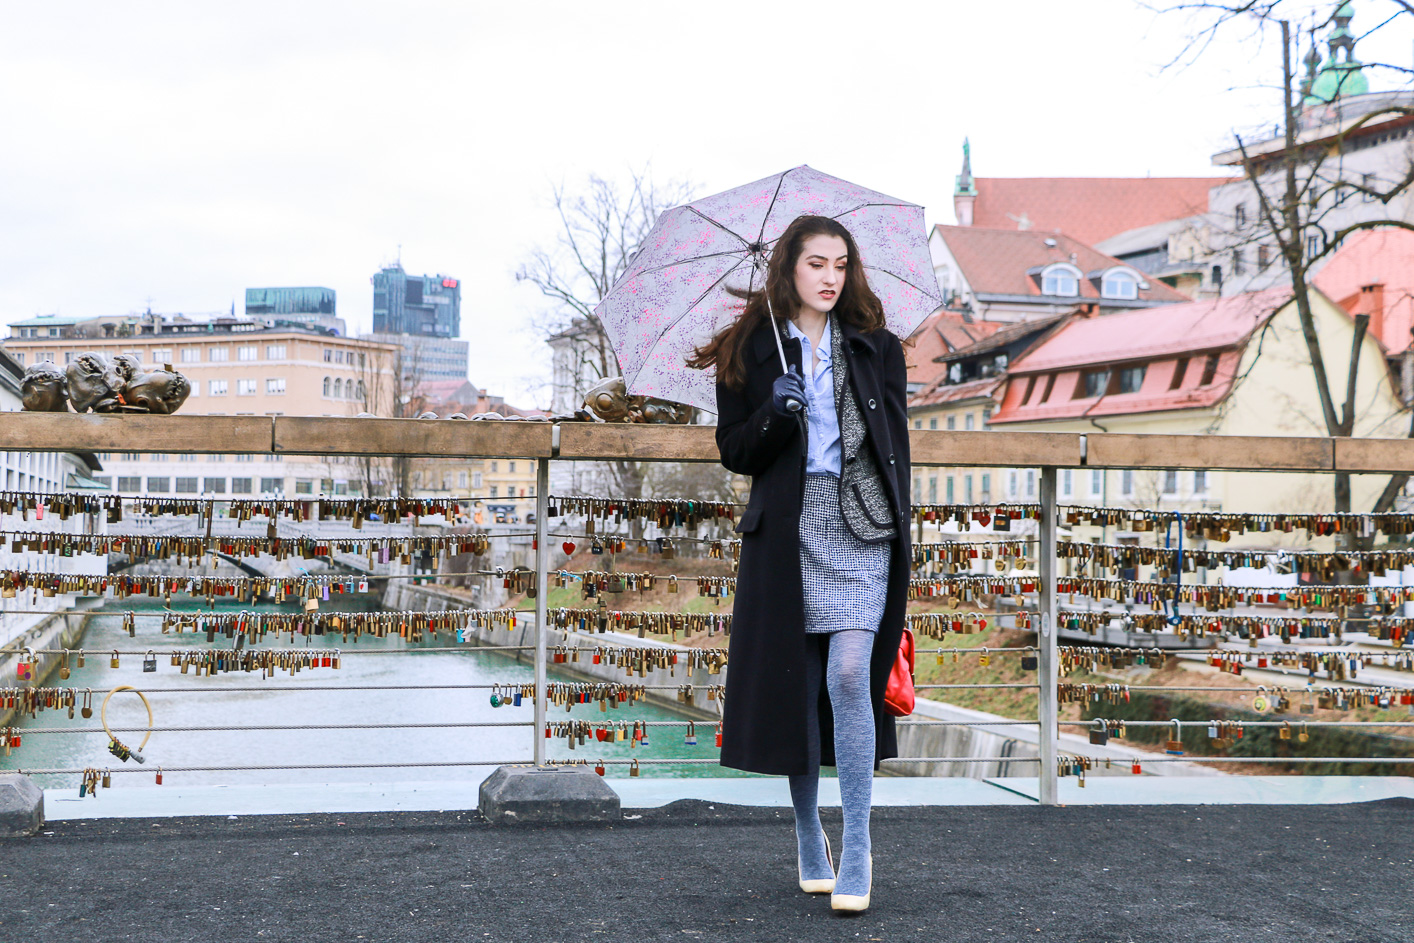 Fashion blogger Veronika Lipar of Brunette From Wall Street sharing how to style a tweed suit as a fashionista